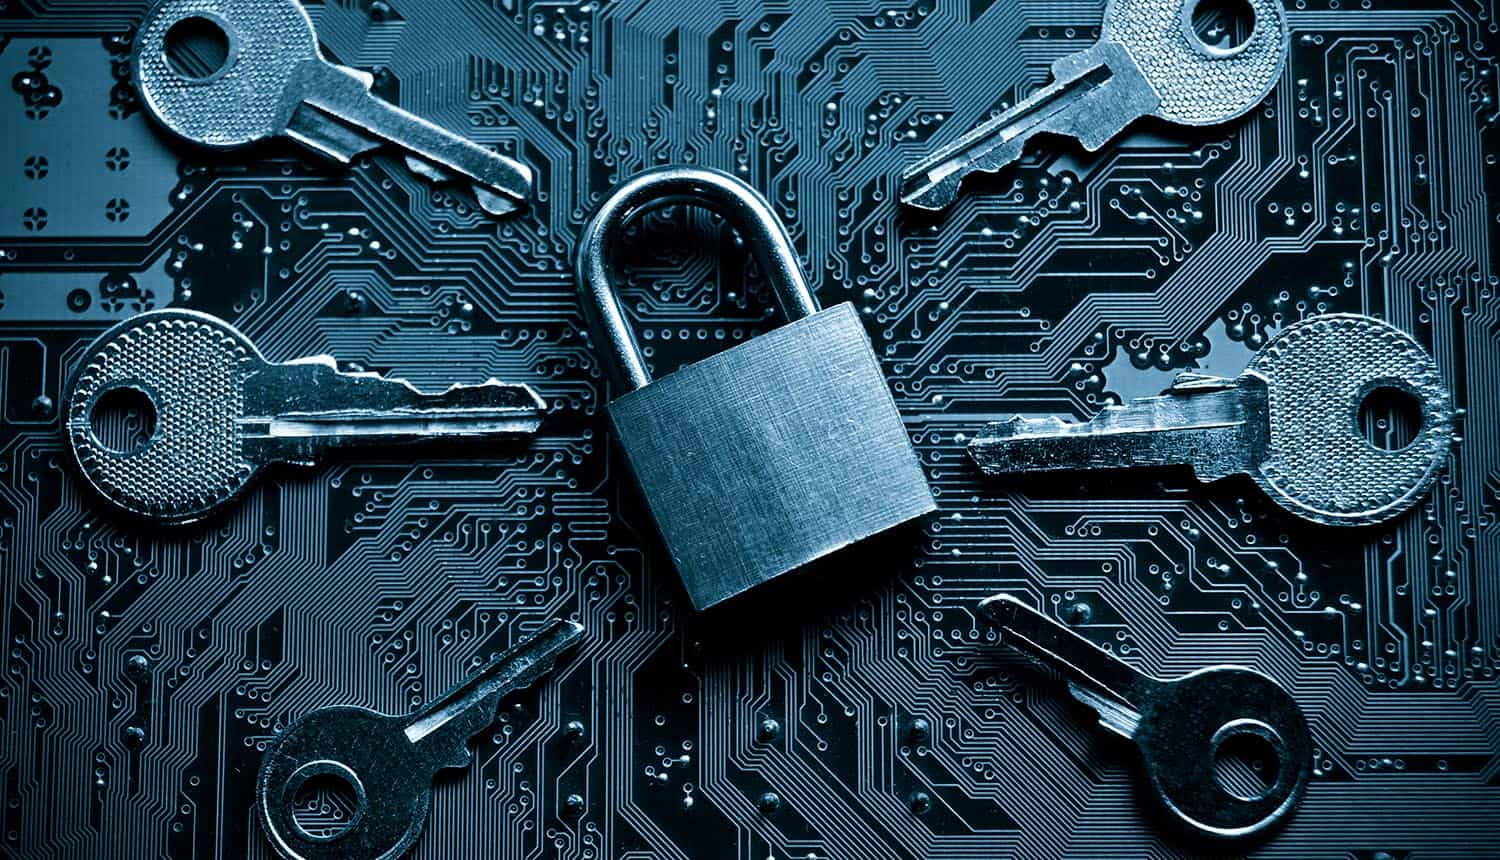 Security lock on a computer circuit board surrounded by keys showing bad passwords